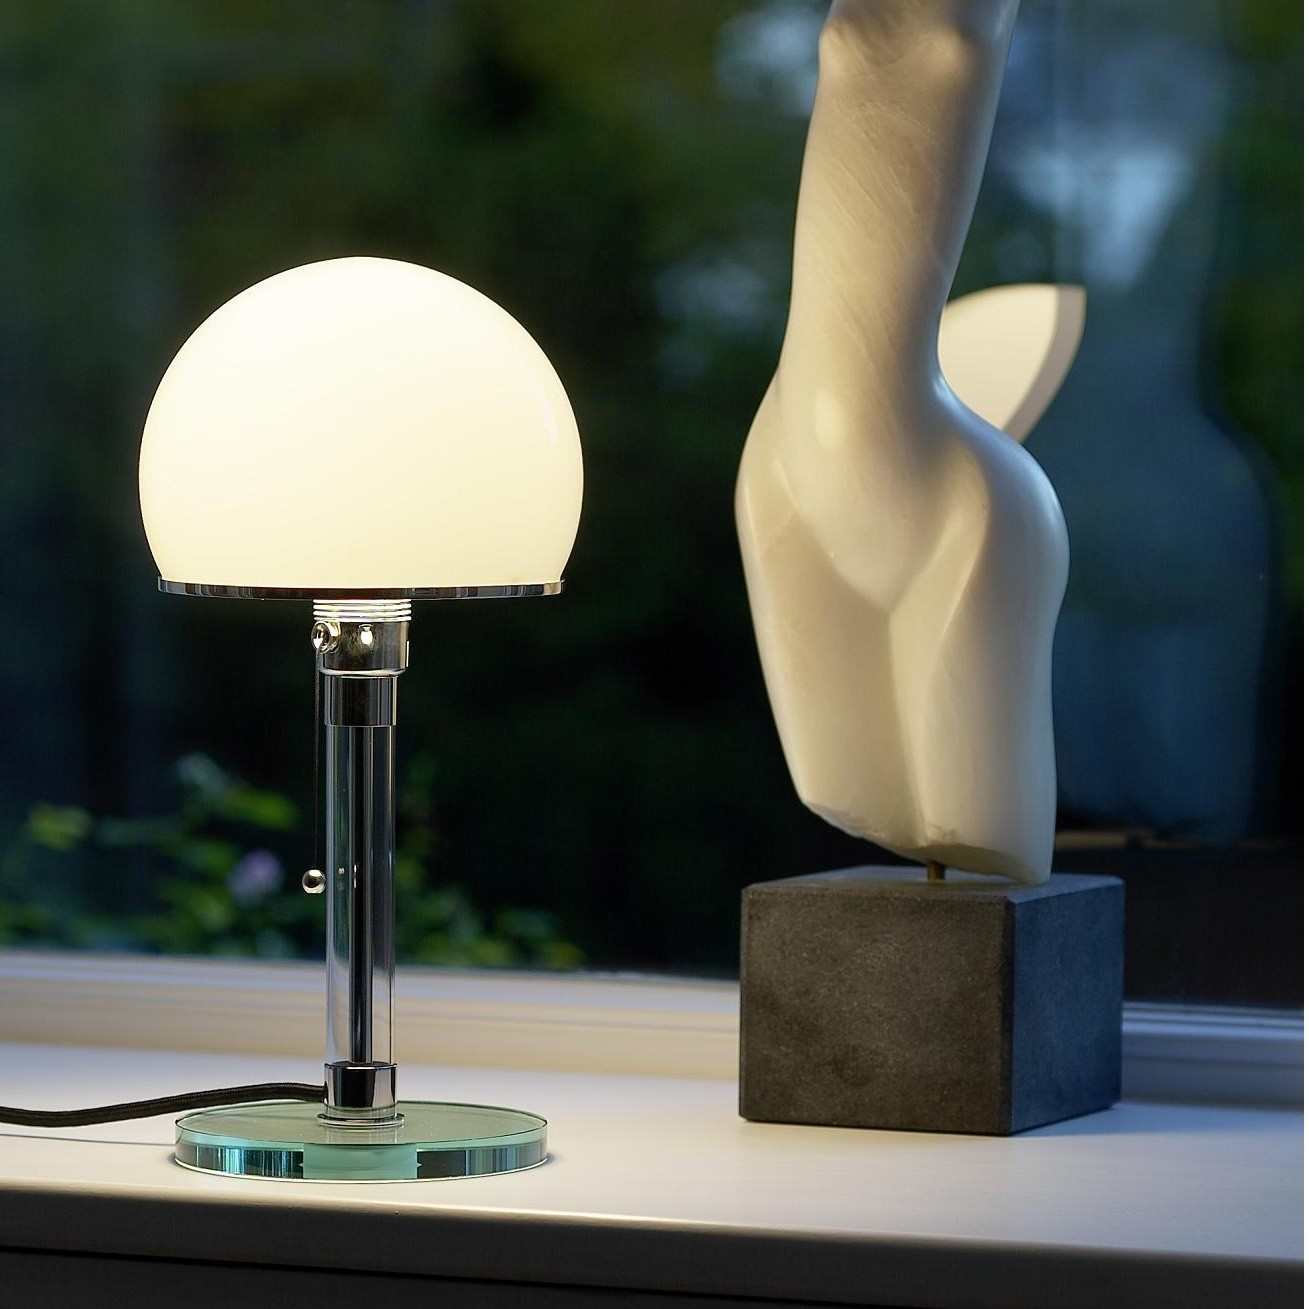 Wagenfeld Leuchte Wagenfeld Table Lamp